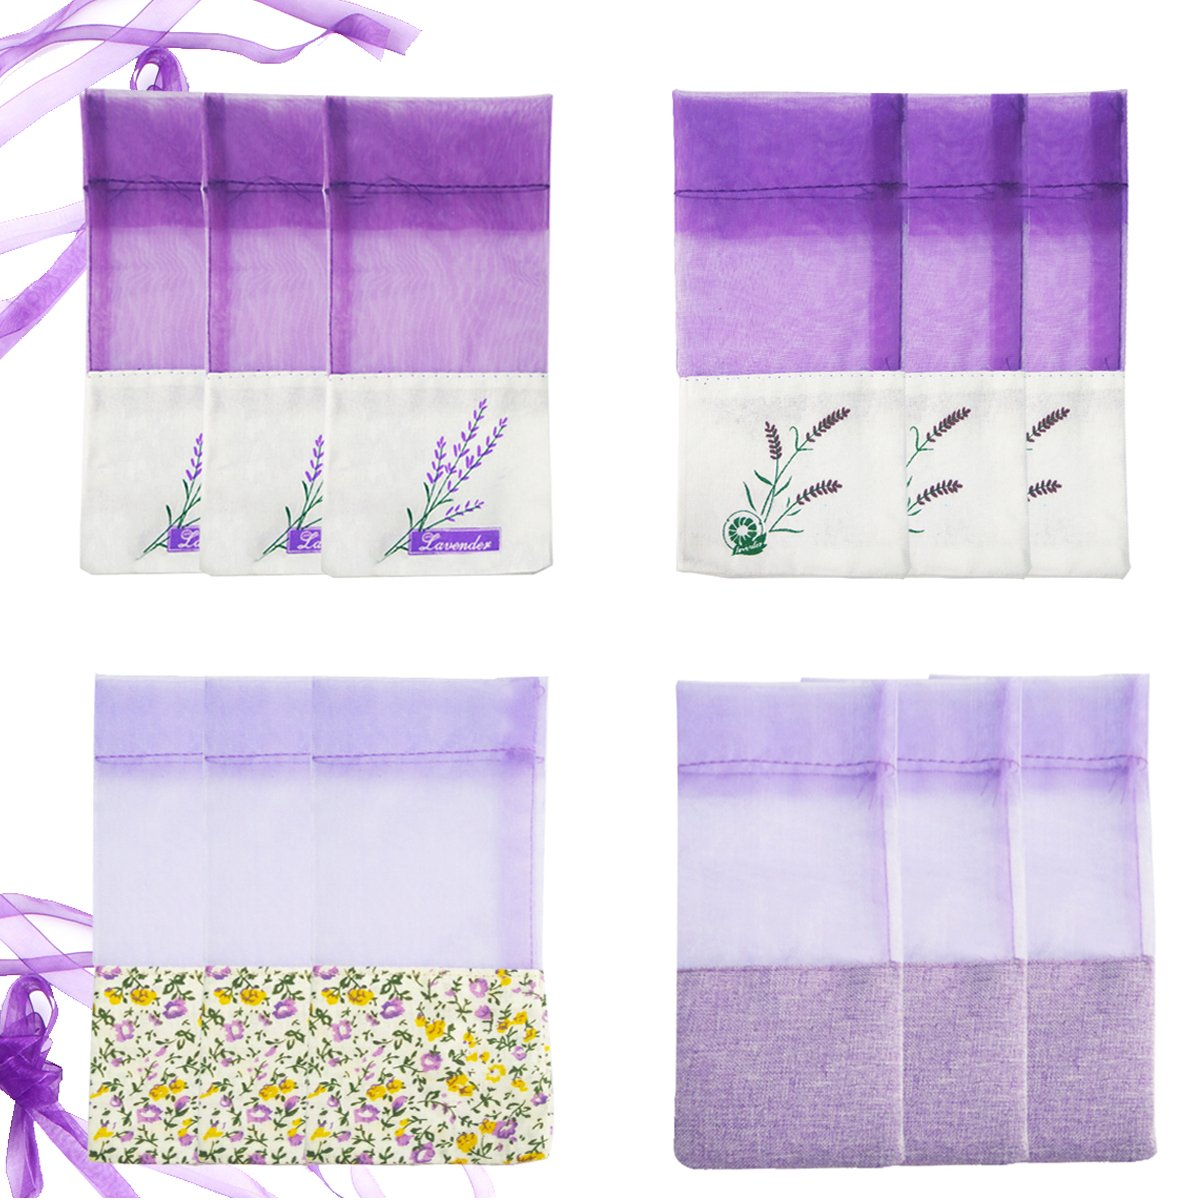 Ezeso 24pcs Sachet Empty Bags Purple Drawstring Gauze Cotton-Ramie Sacks for Lavender, Spice and Herbs(24pcs Drawstring Bag) Ezeso Co. Ltd.